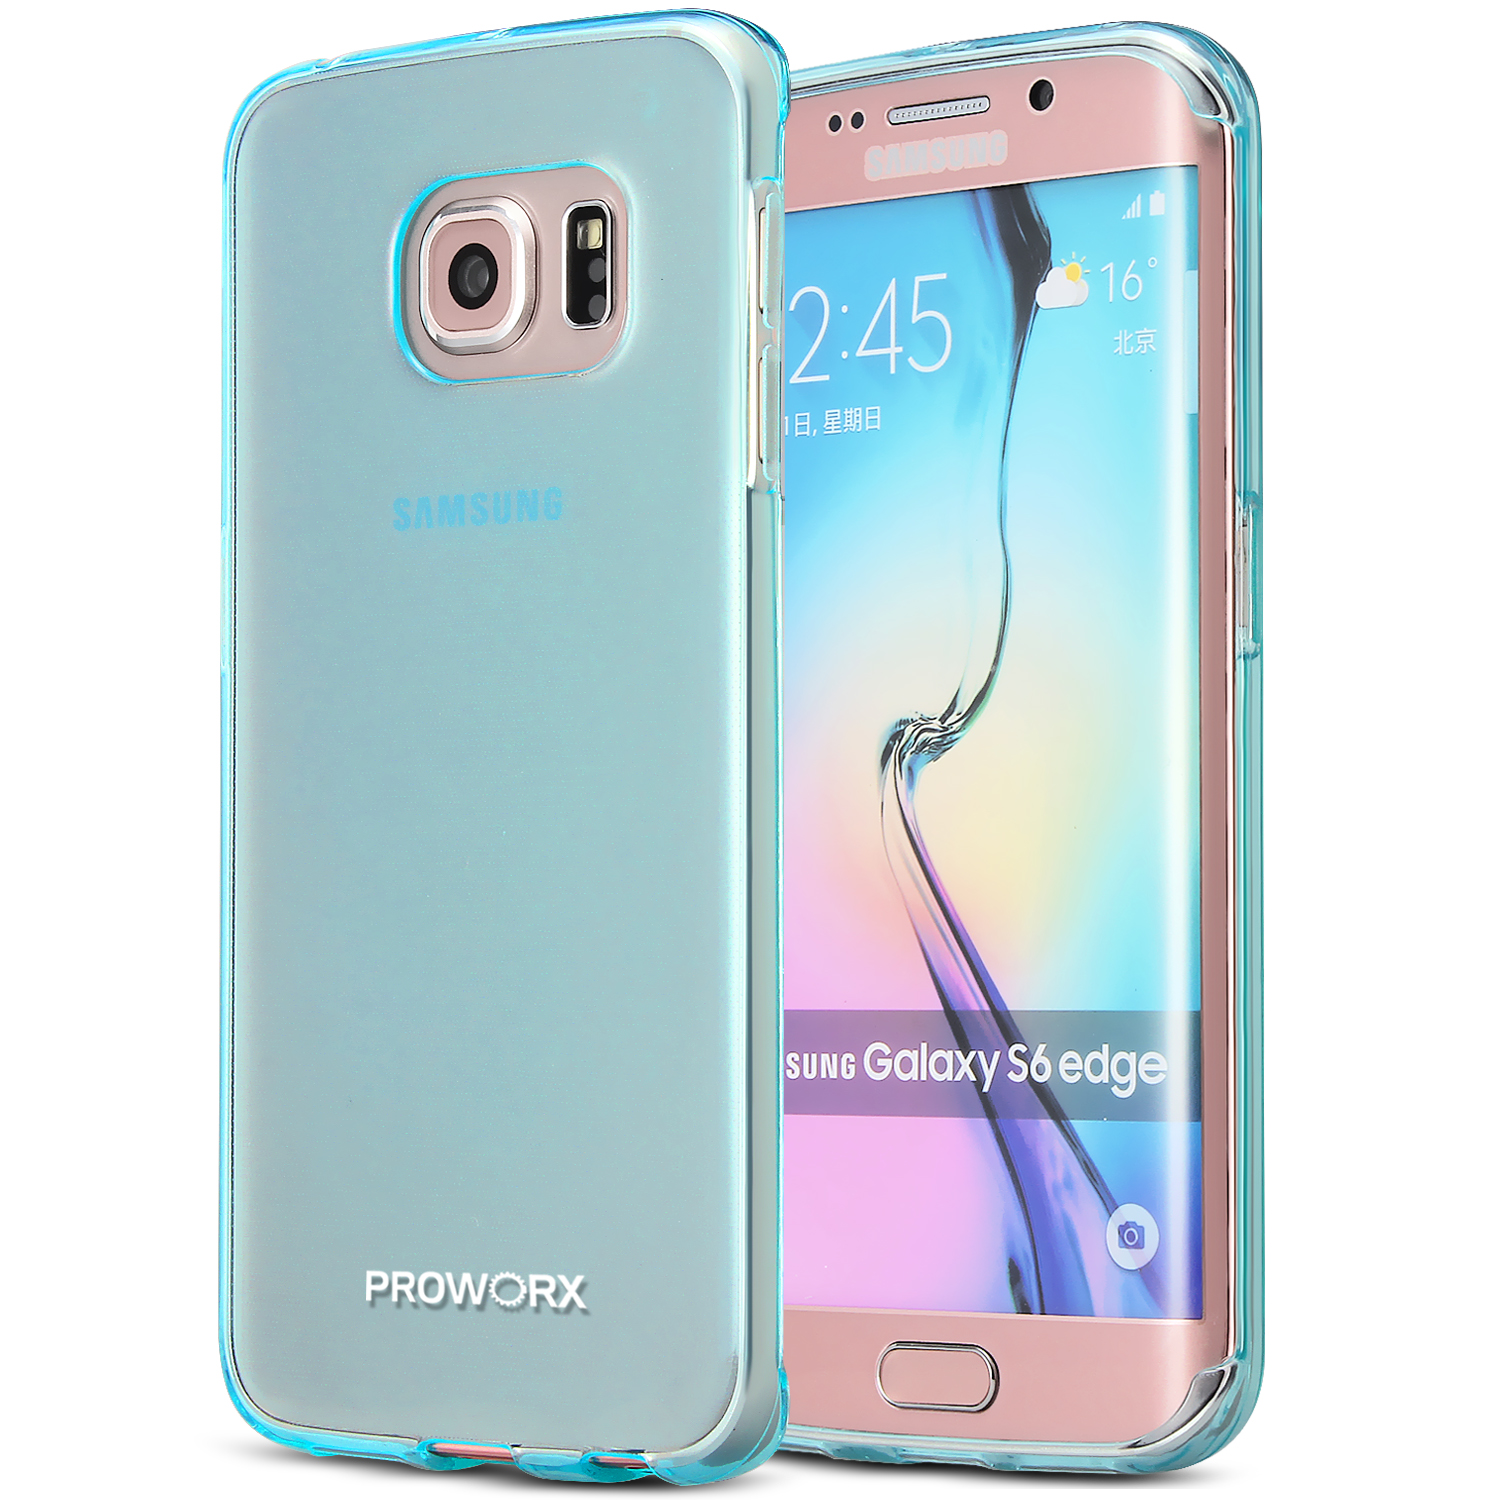 Samsung Galaxy S6 Edge Mint Green ProWorx Ultra Slim Thin Scratch Resistant TPU Silicone Case Cover